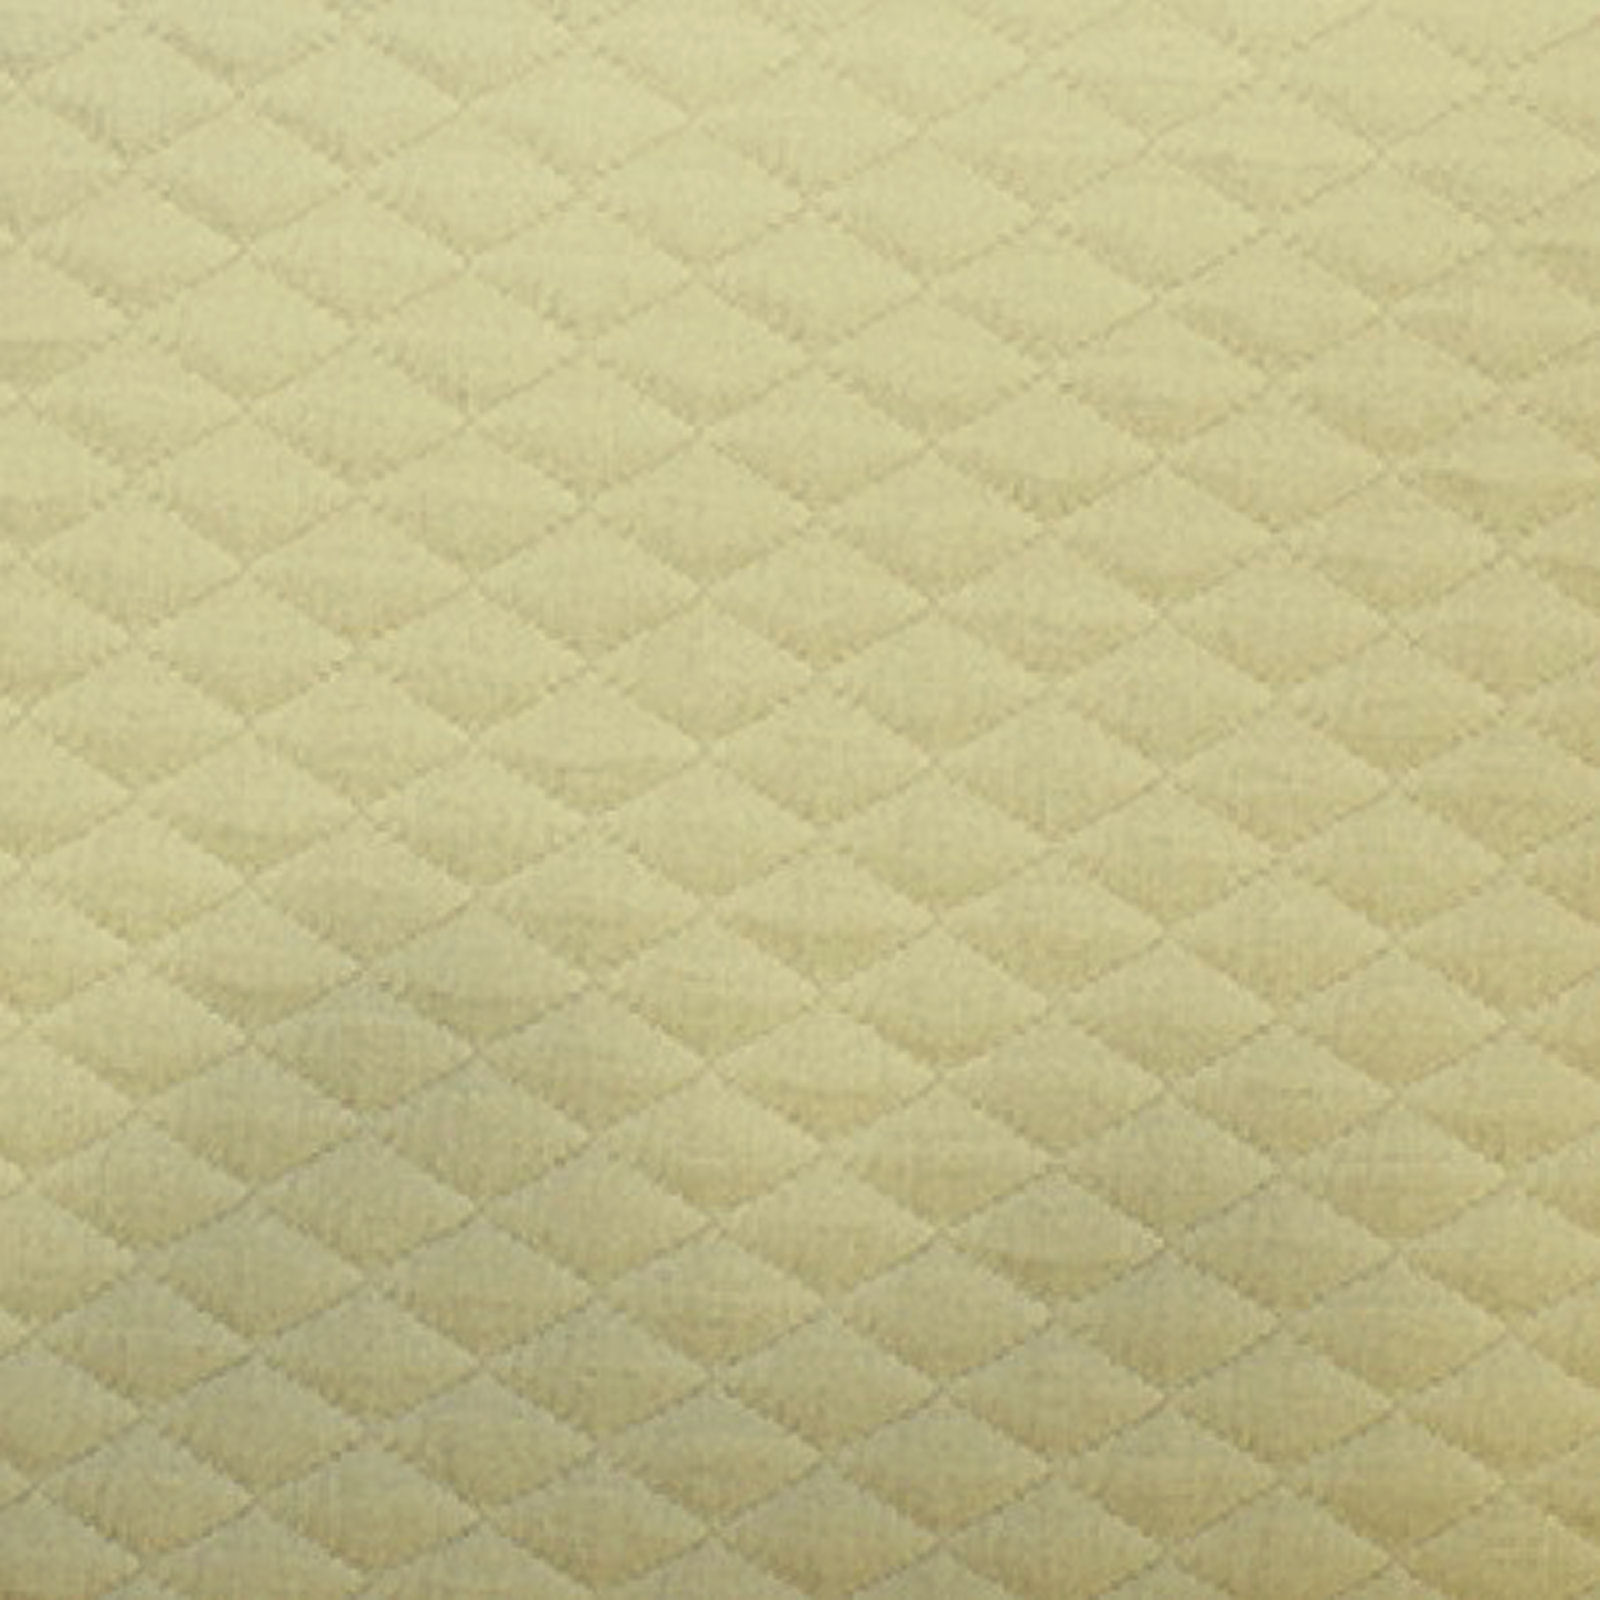 fabric quilting itm quilt material diamond white colours polyester stretch wide